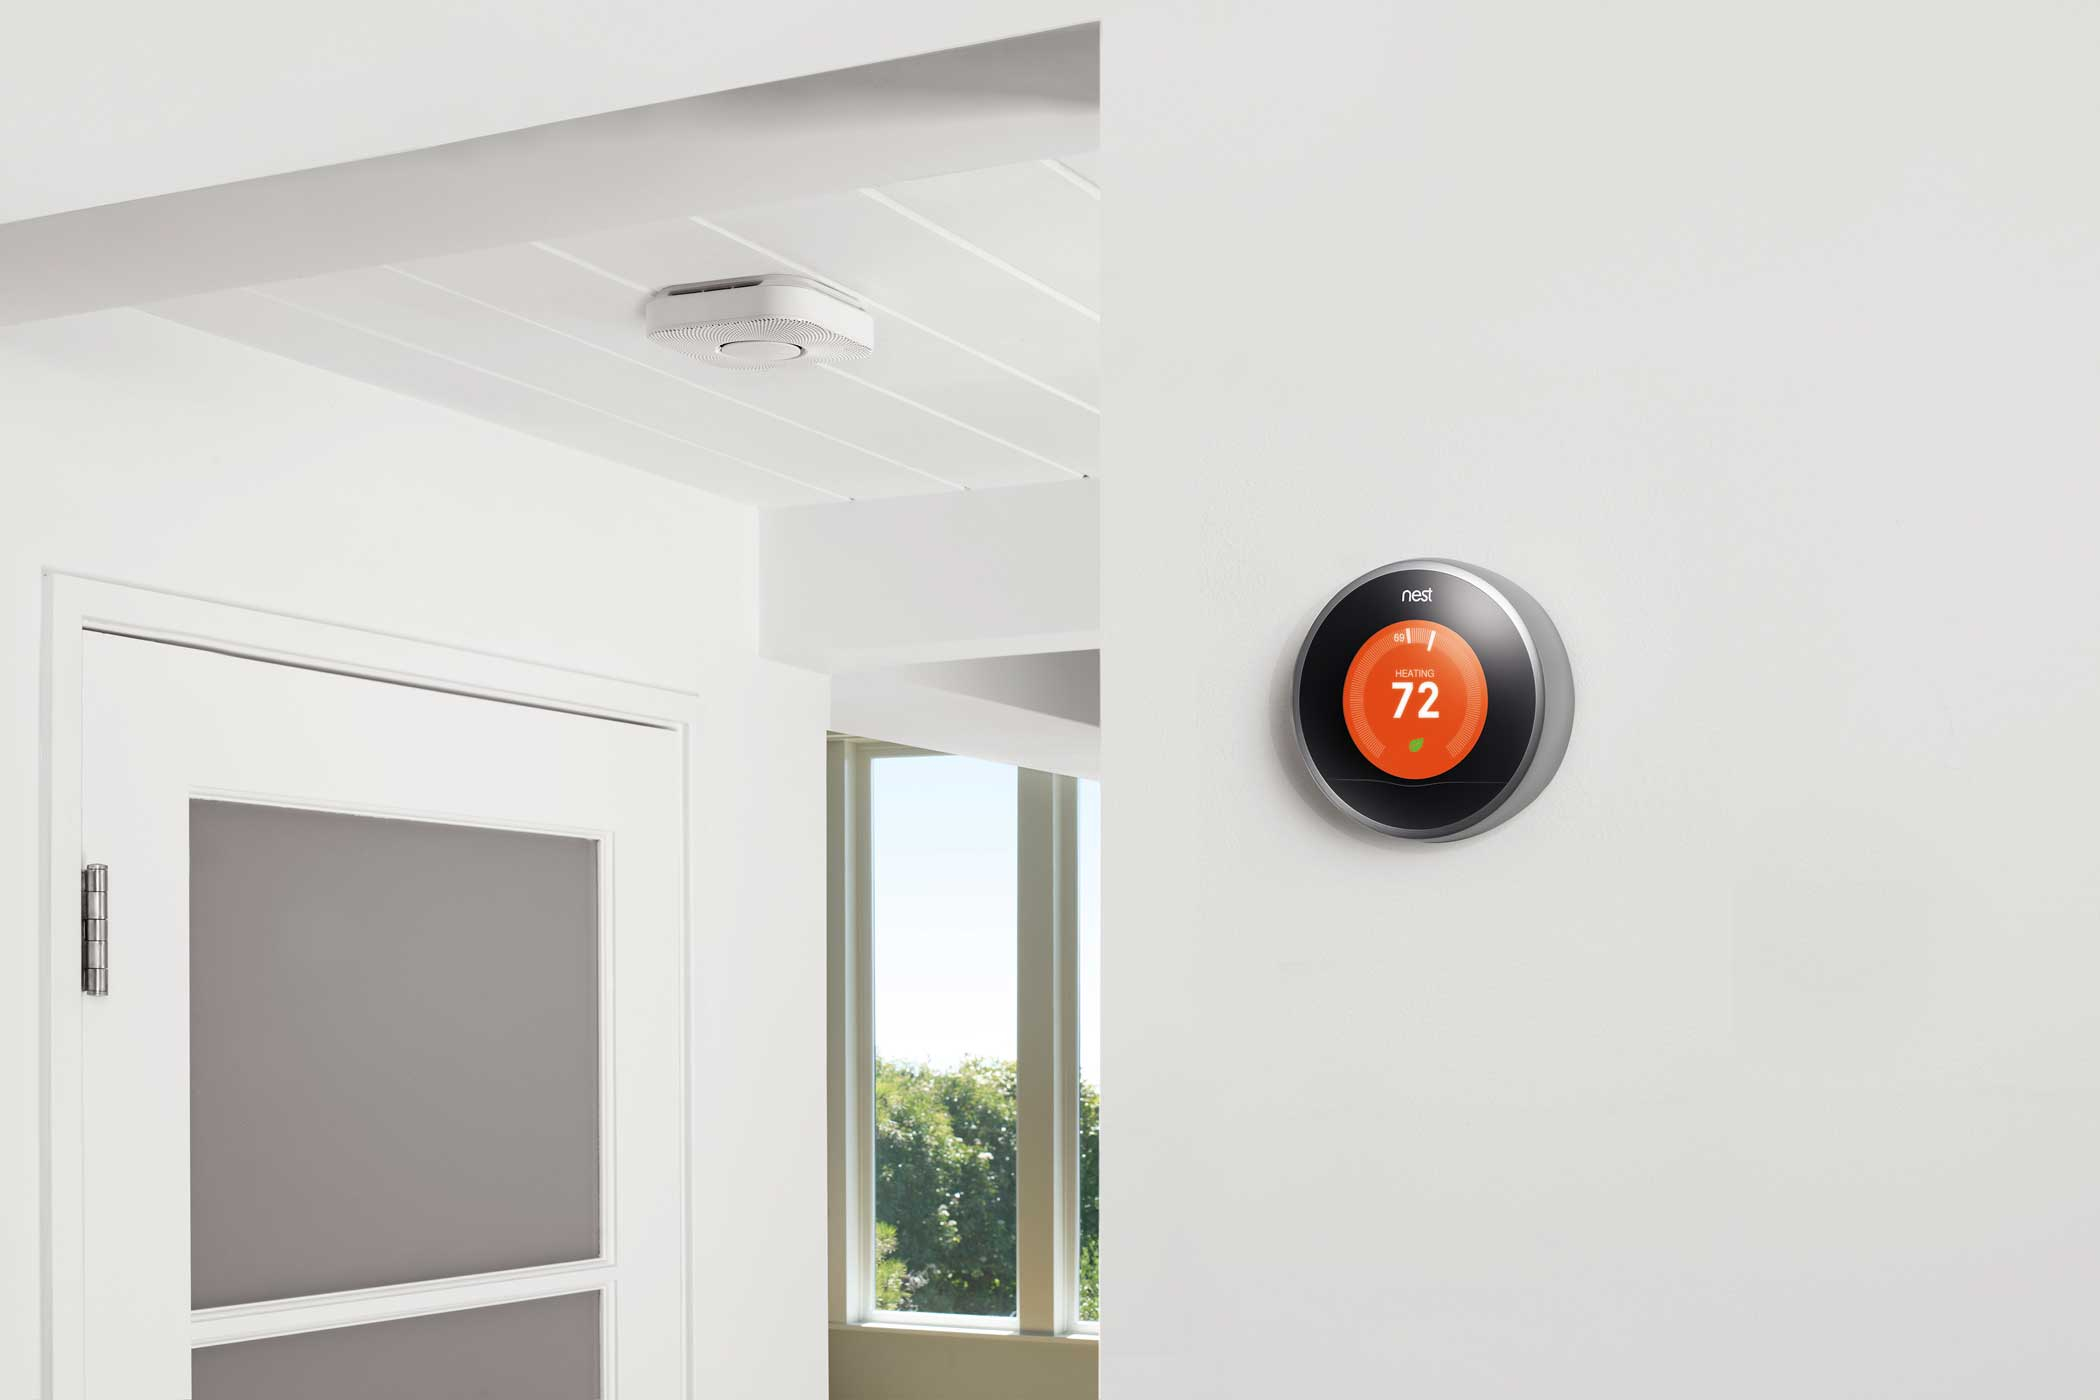 <b>Nest</b>: The smart thermostat company that Google bought for $3.2 billion in 2014 is the centerpiece in Google's plan to control the smart homes of the future.